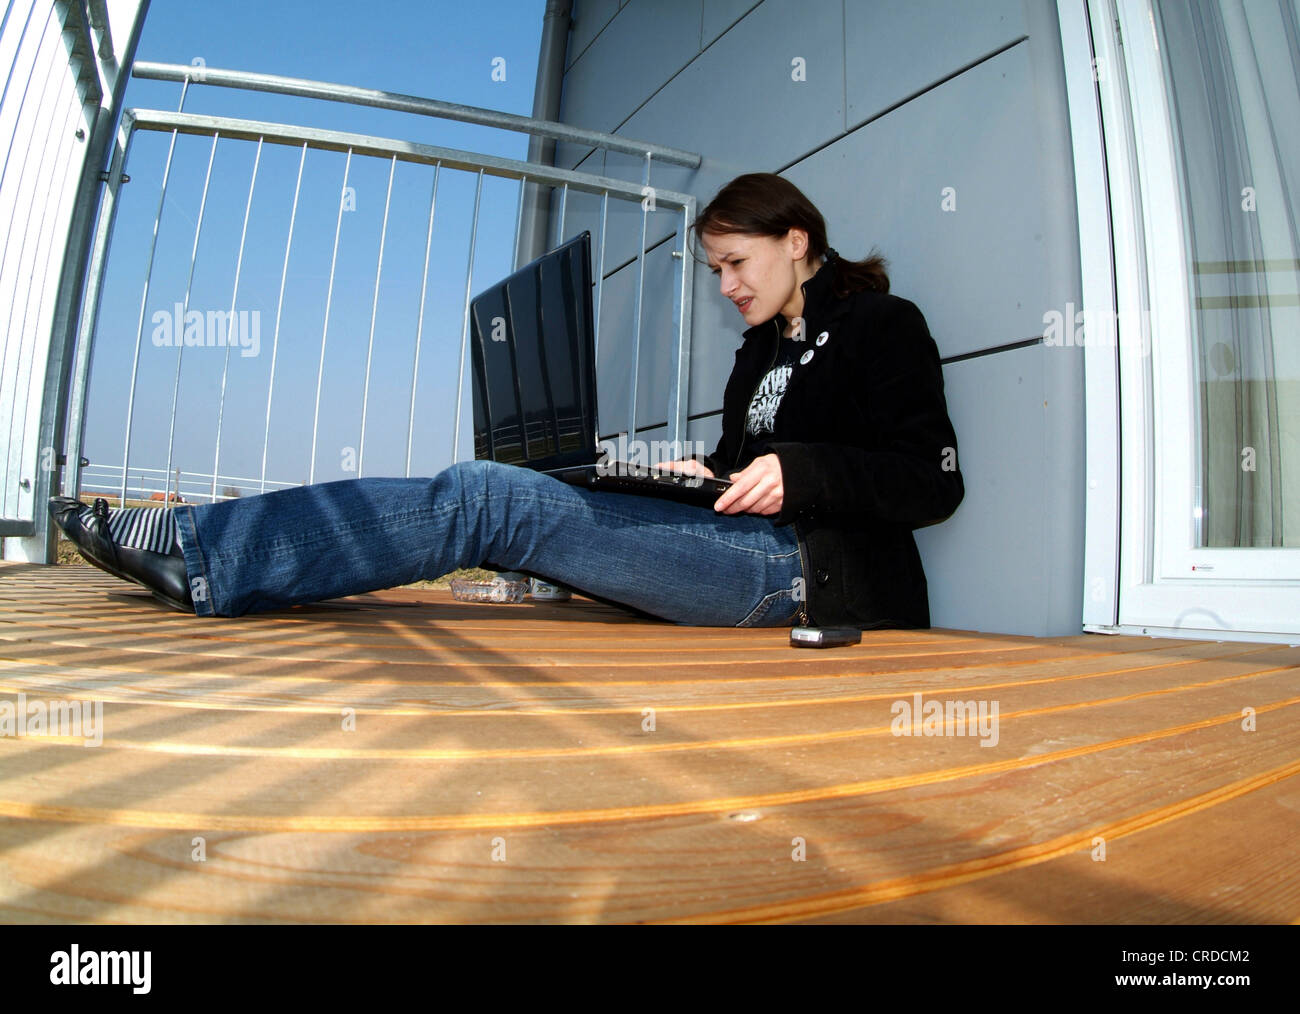 young woman sitting on sunny balcony, working with laptop - Stock Image